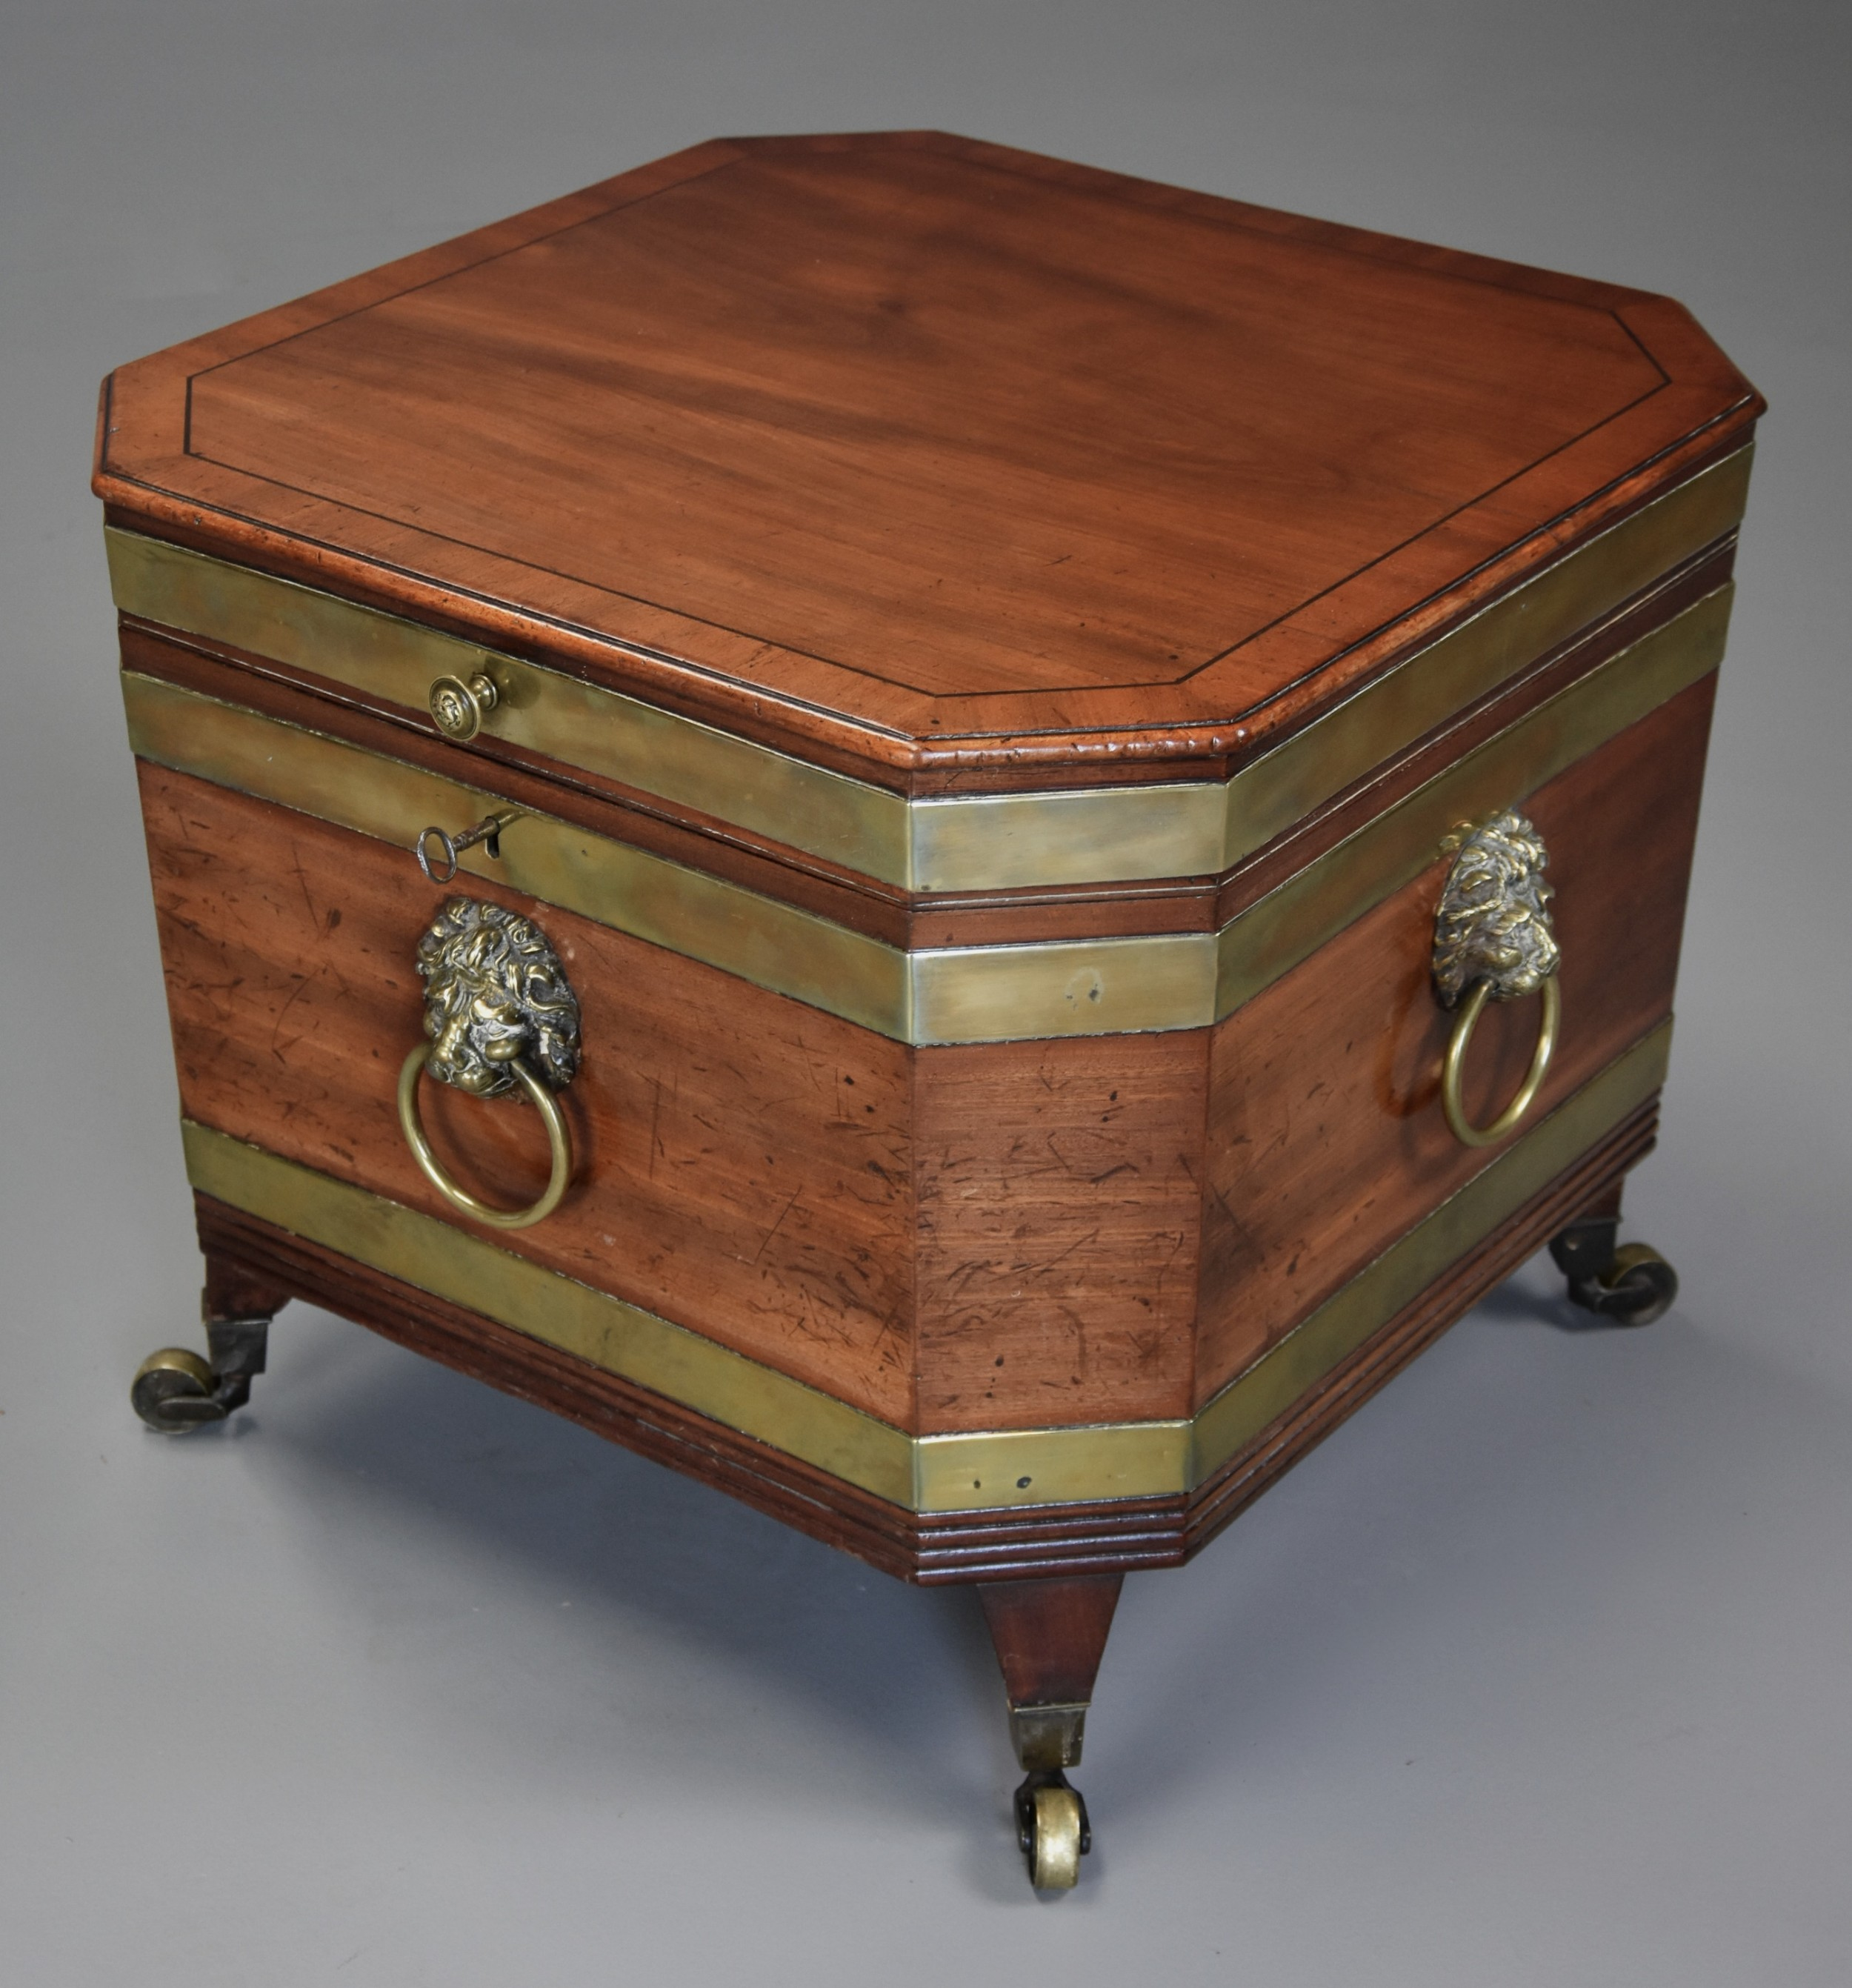 early 19th century regency mahogany brass bound cellarette or wine cooler of excellent patina